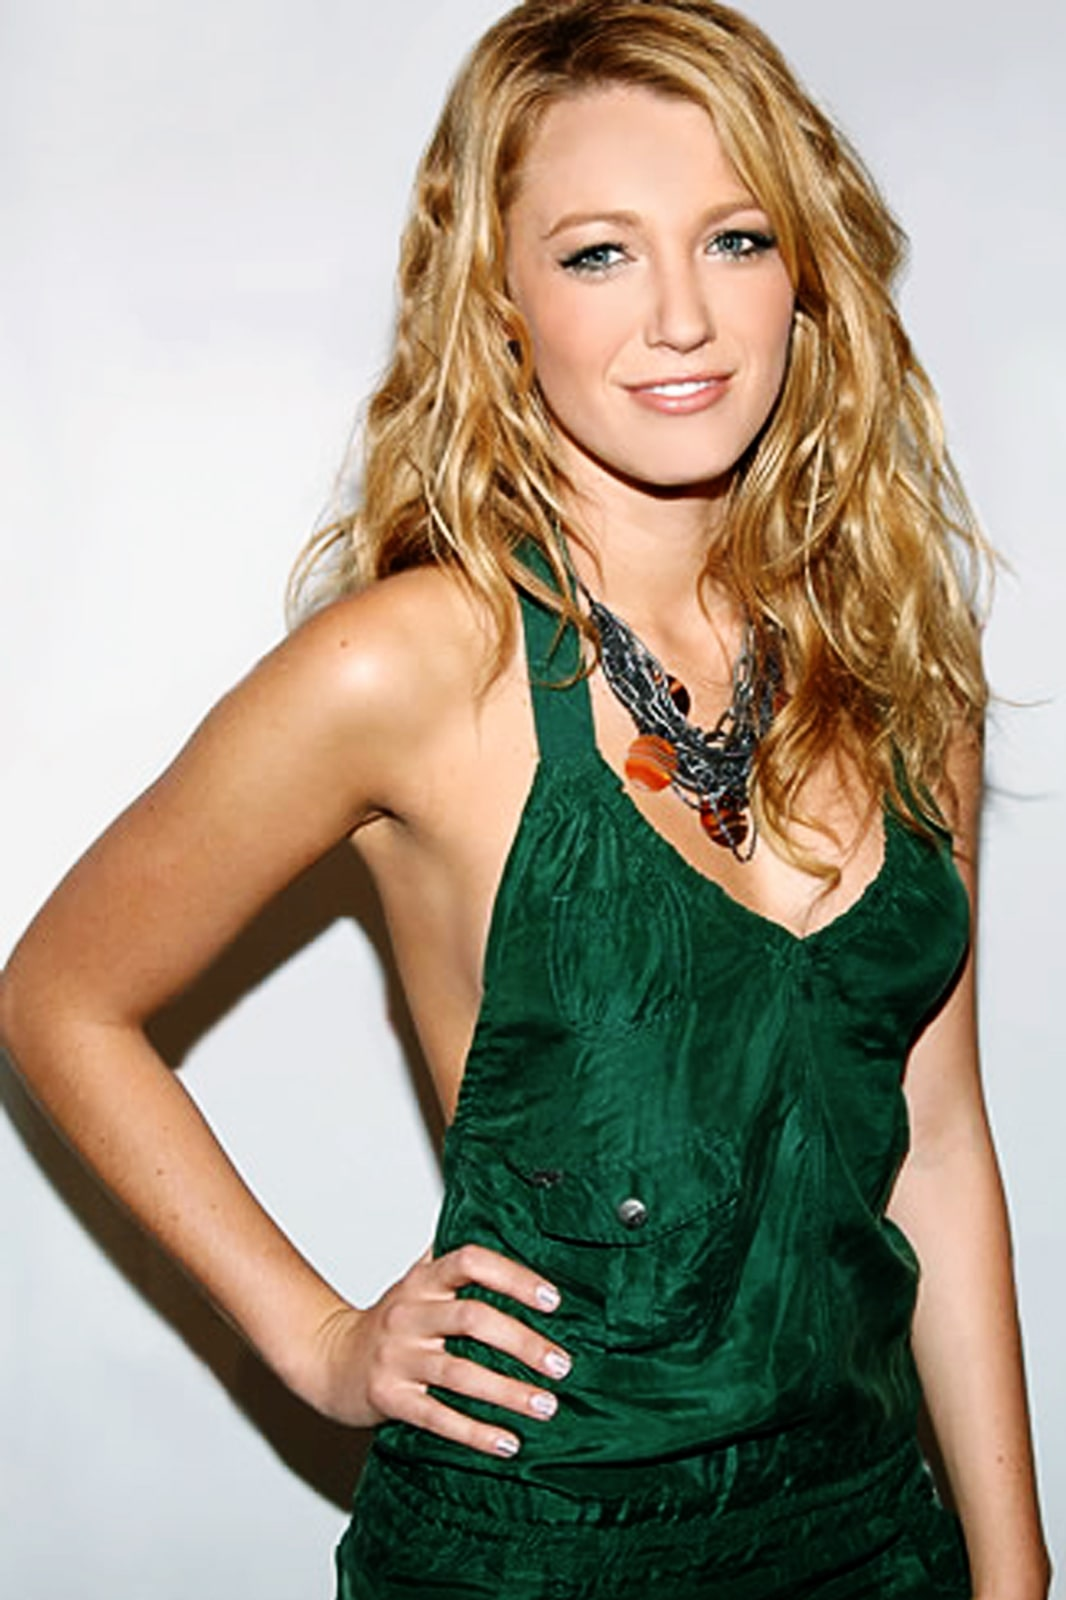 Blake Lively hot green dress